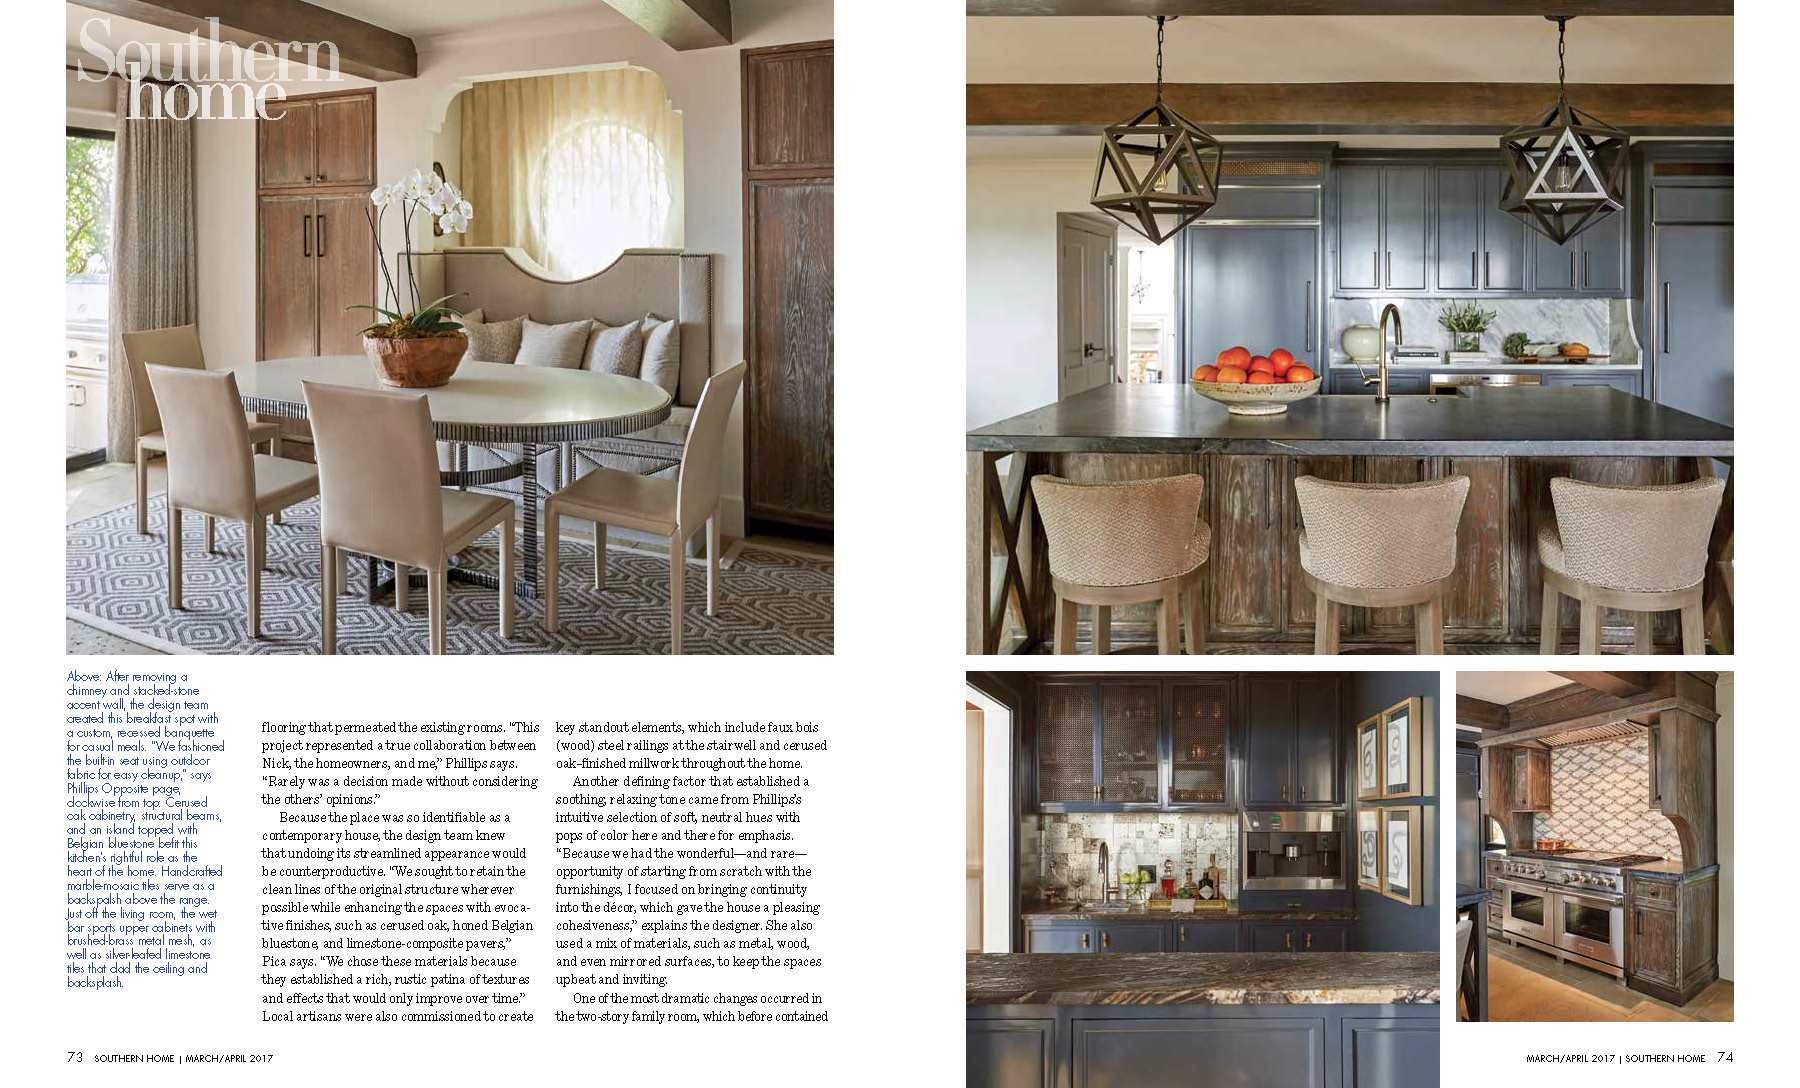 SouthernHome_Page_4.jpg